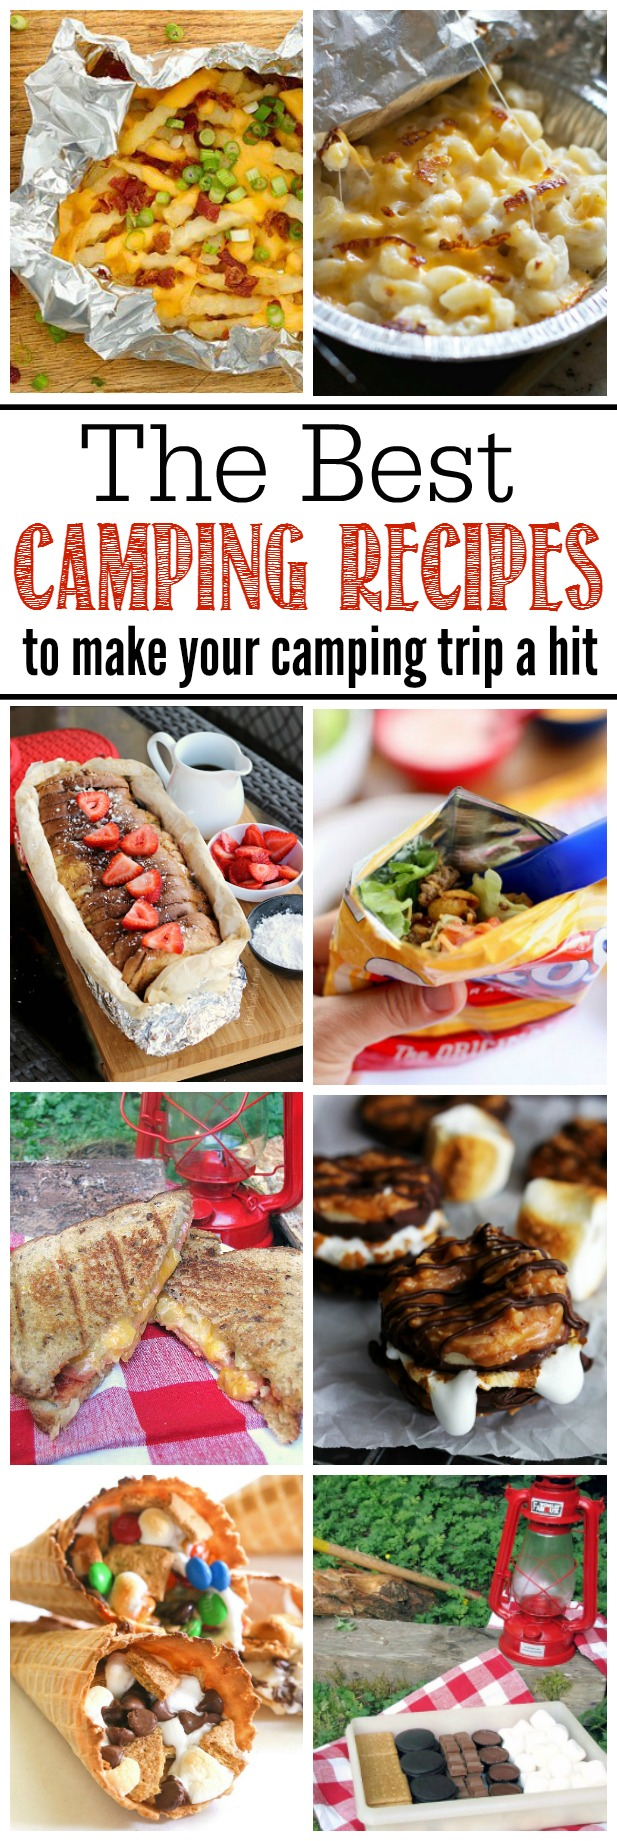 Best Camping Recipes Clean And Scentsible